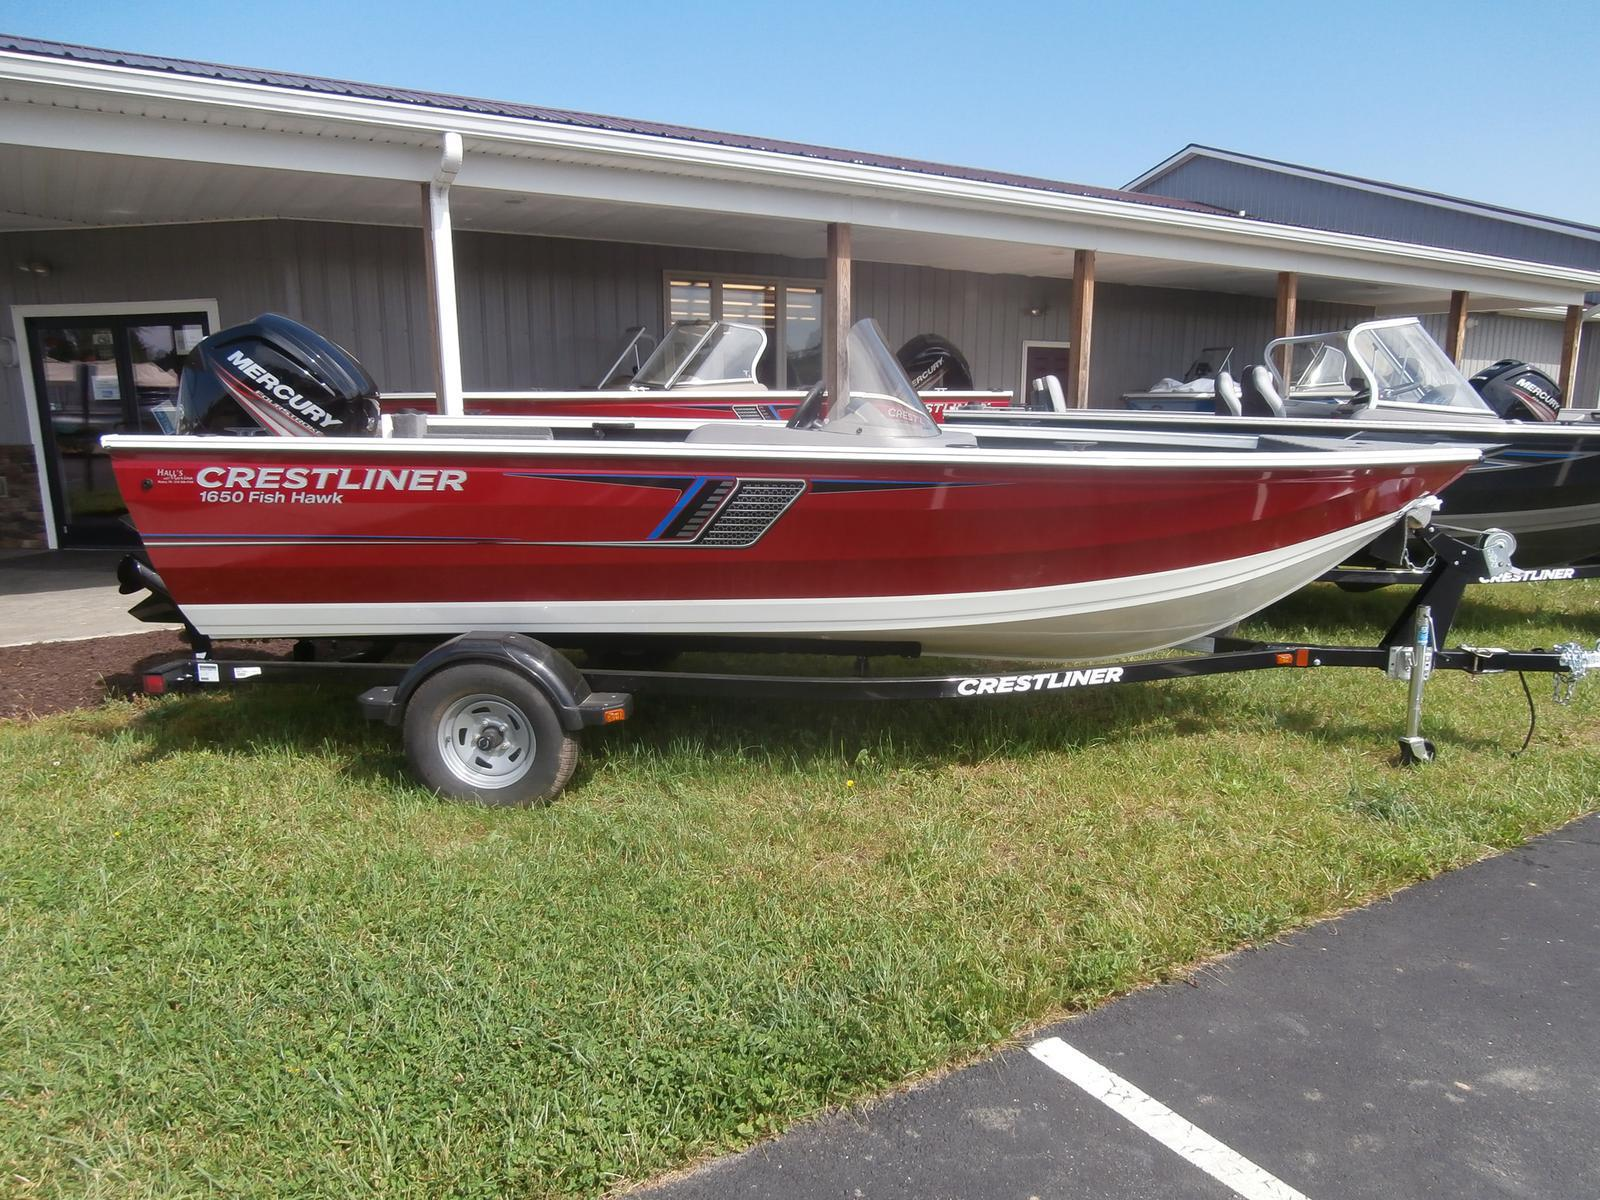 2017 Crestliner 1650 Fish Hawk Sc For Sale In Muncy Pa Halls Fishing Boat Wiring Harness Marine 570 935 0159